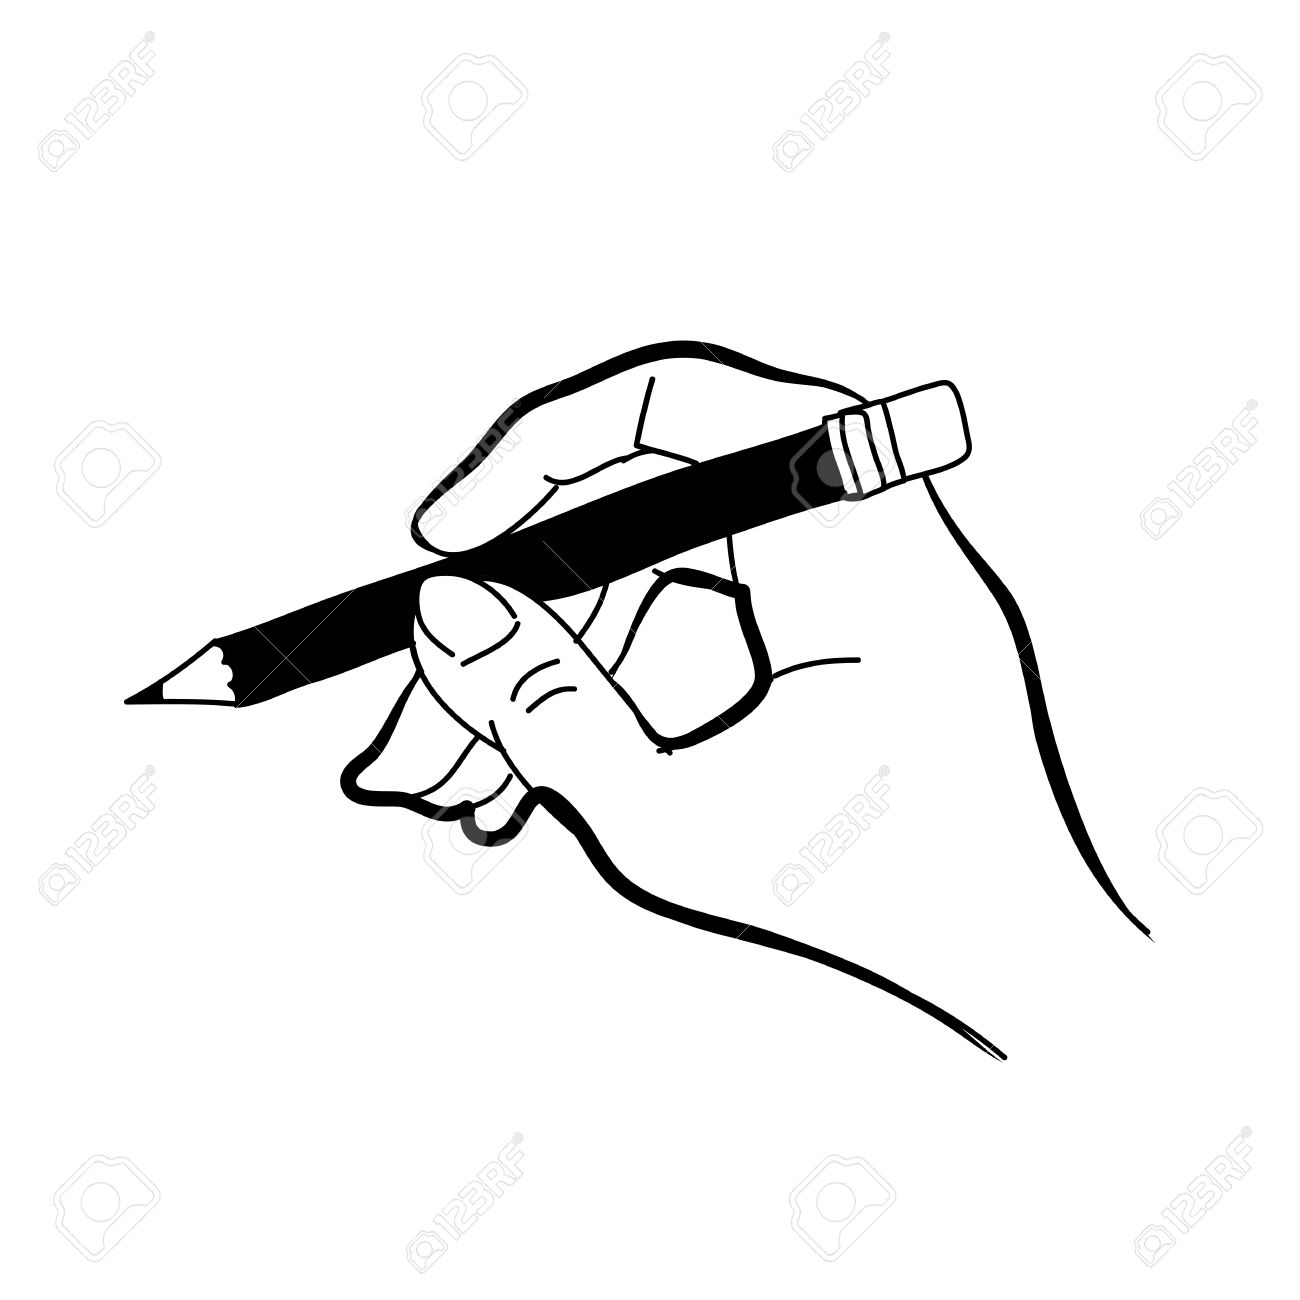 Outline of a hand and pencil drawing clipart svg freeuse download Hand Holding Something Sketch at PaintingValley.com ... svg freeuse download